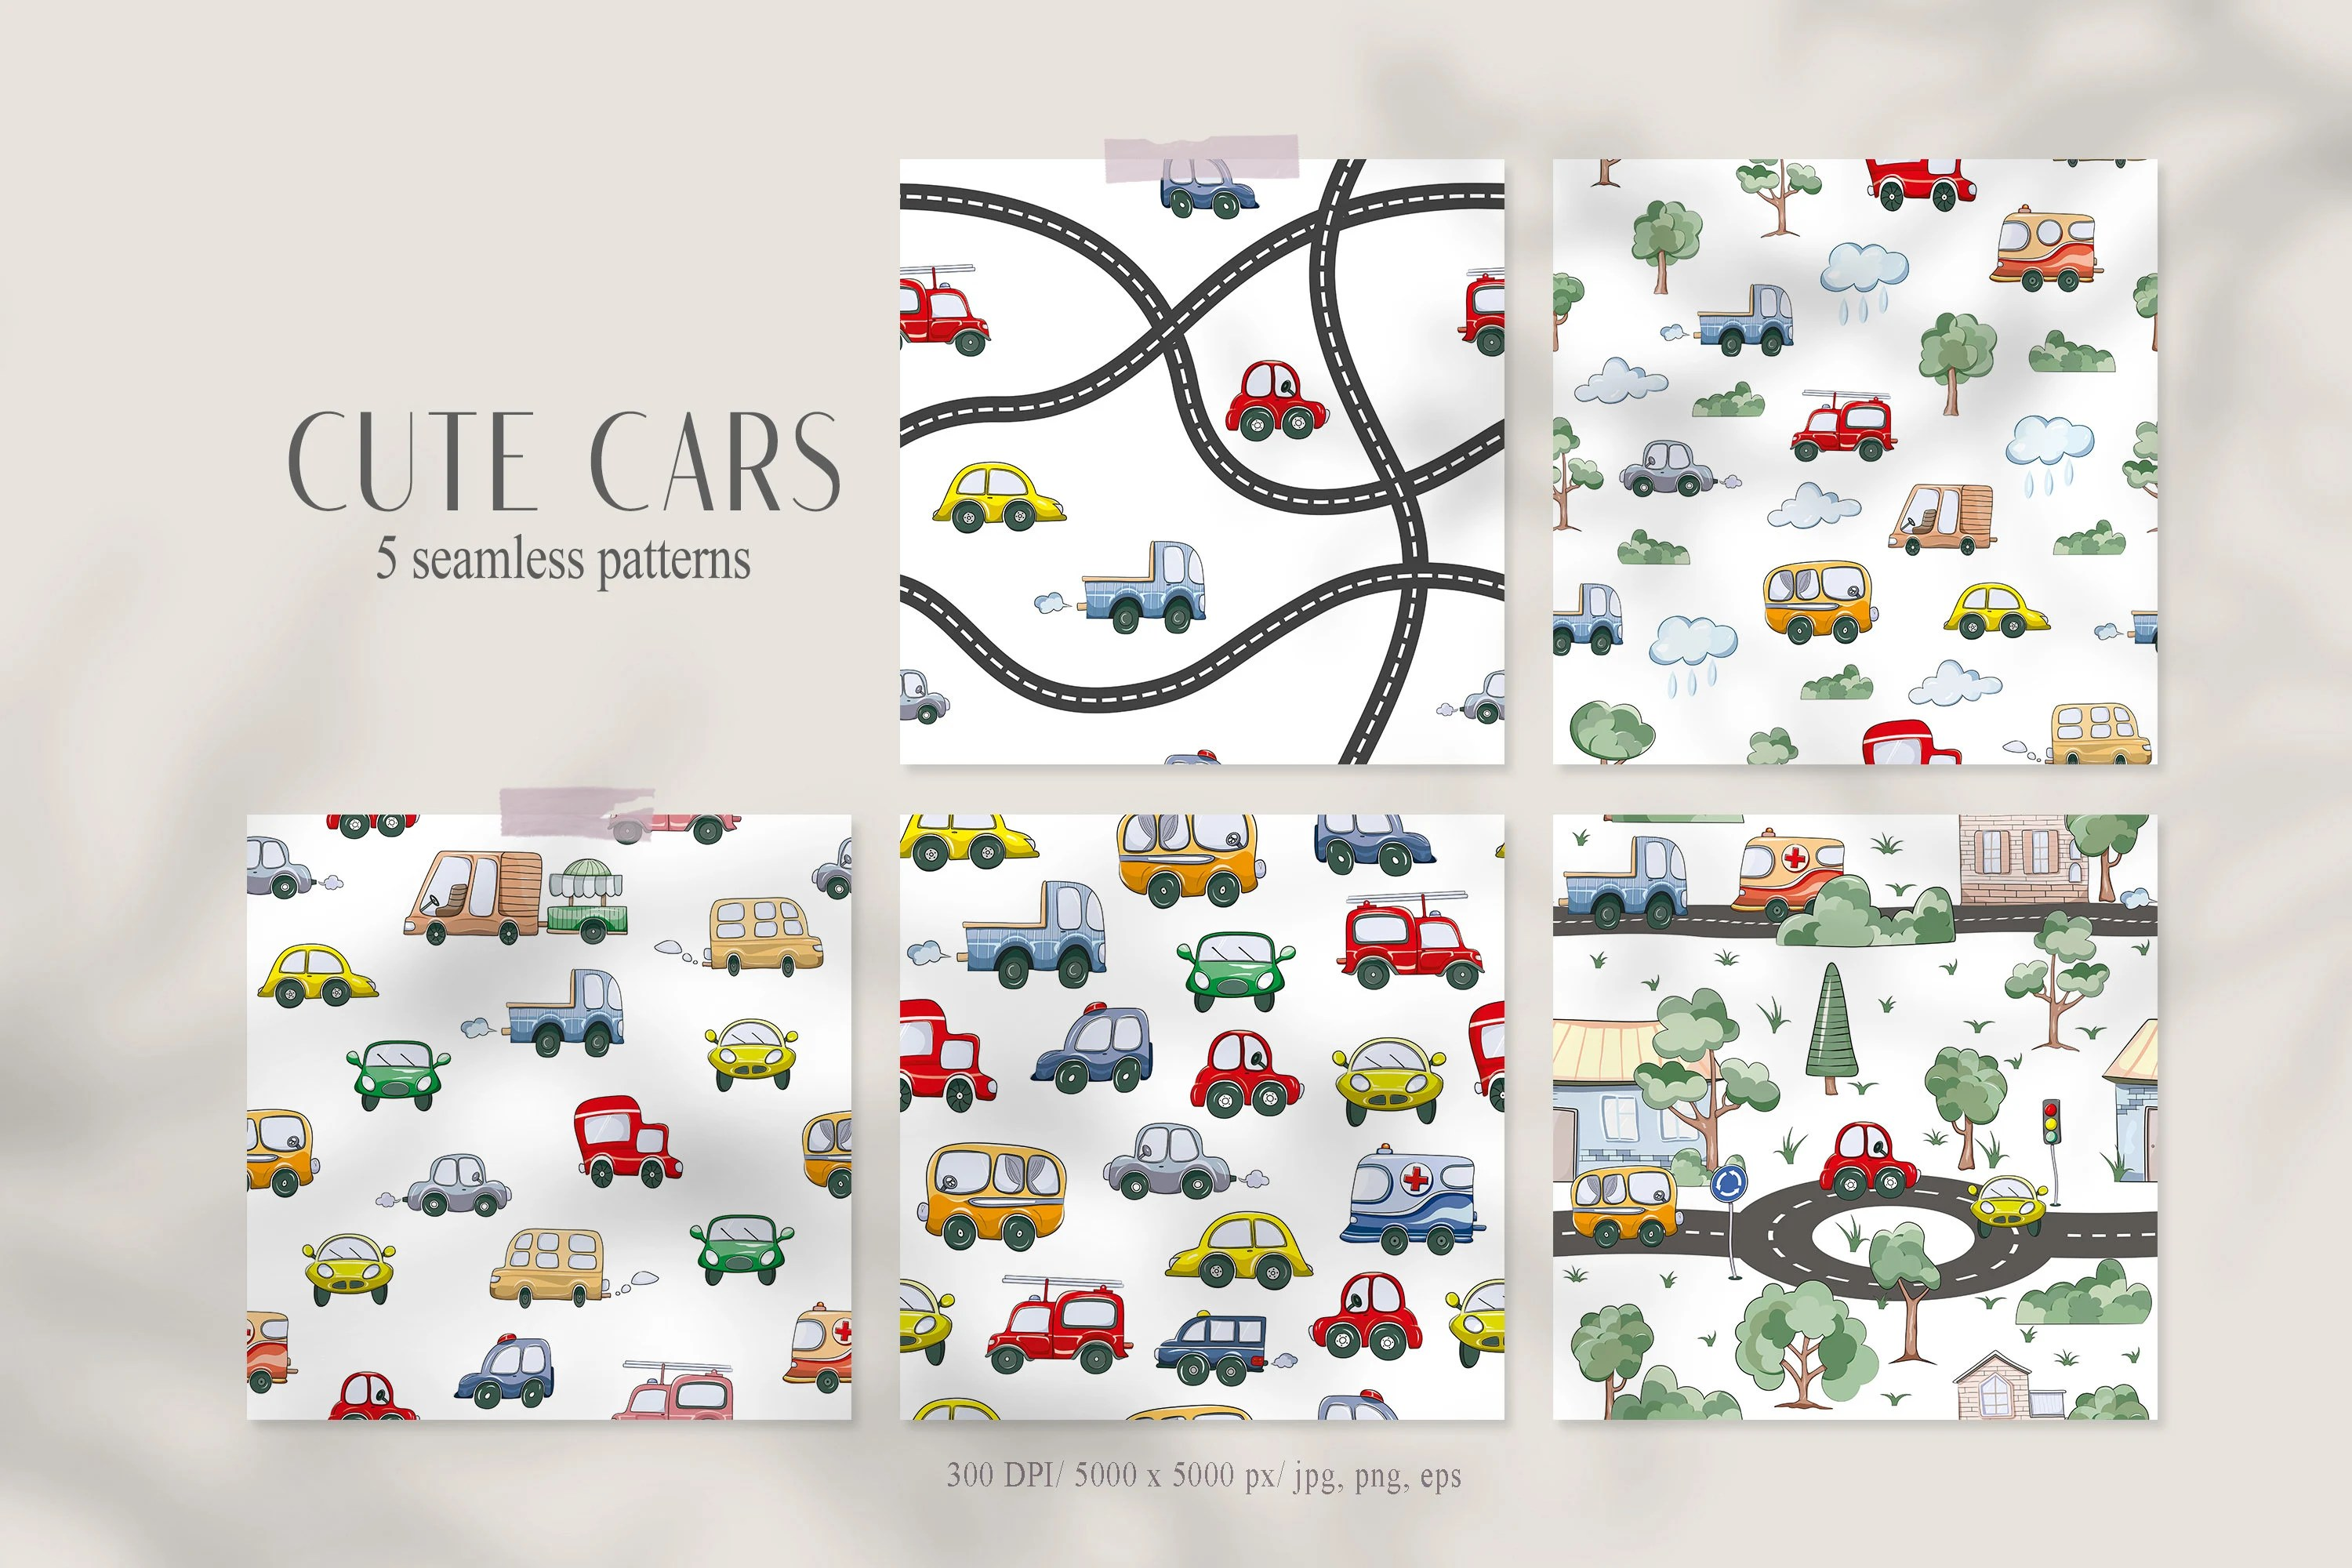 The company is now worth $3.3 billion. Car Wallpaper Etsy